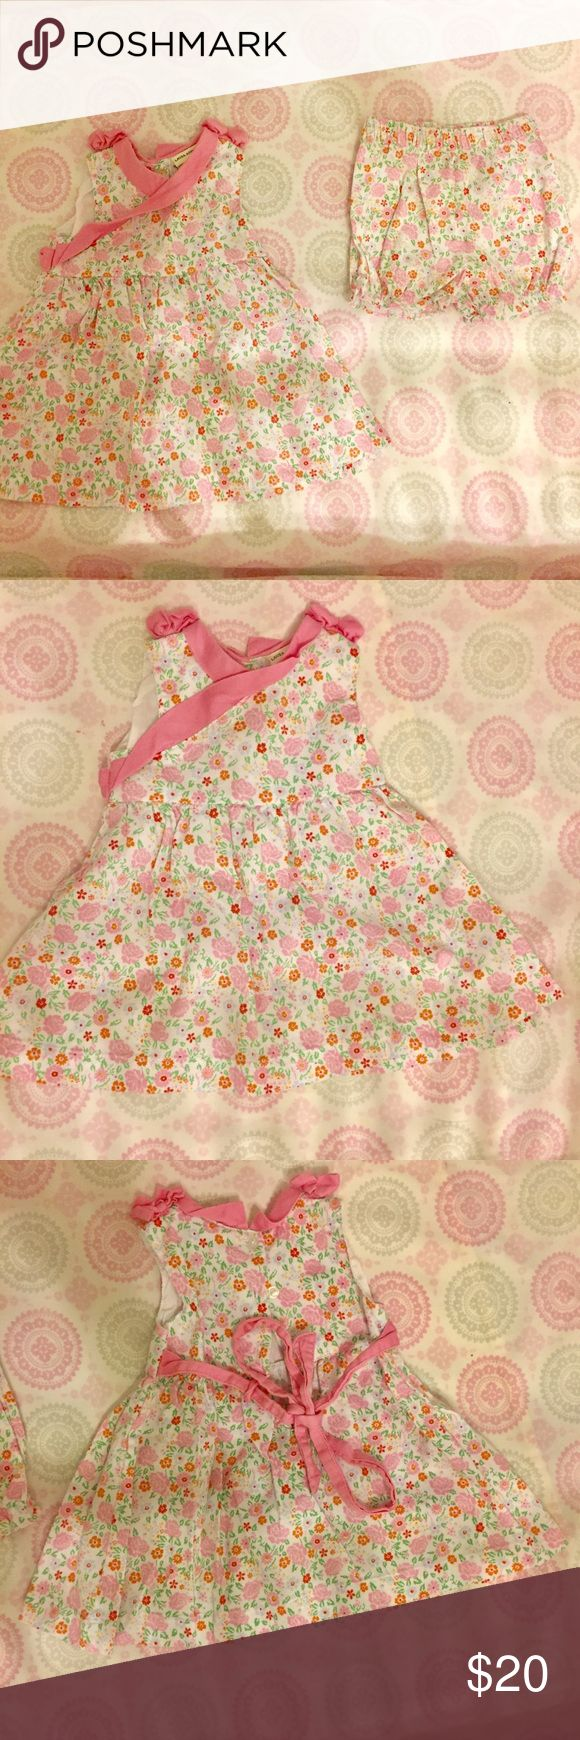 Laura Ashley 6m Floral Baby Girl **updated pics** 6m Laura Ashley floral dress with shorts.  Cream color with pink and orange.  Dress is made to be worn with the shorts to cover diaper.  Super cute outfit great for summer or fall.  In excellent condition, only worn a few times.  No issues or problems at all.  Love this!  Great for pictures, church, party, special occasions or every day.  Very versatile.  High quality material. Laura Ashley Matching Sets